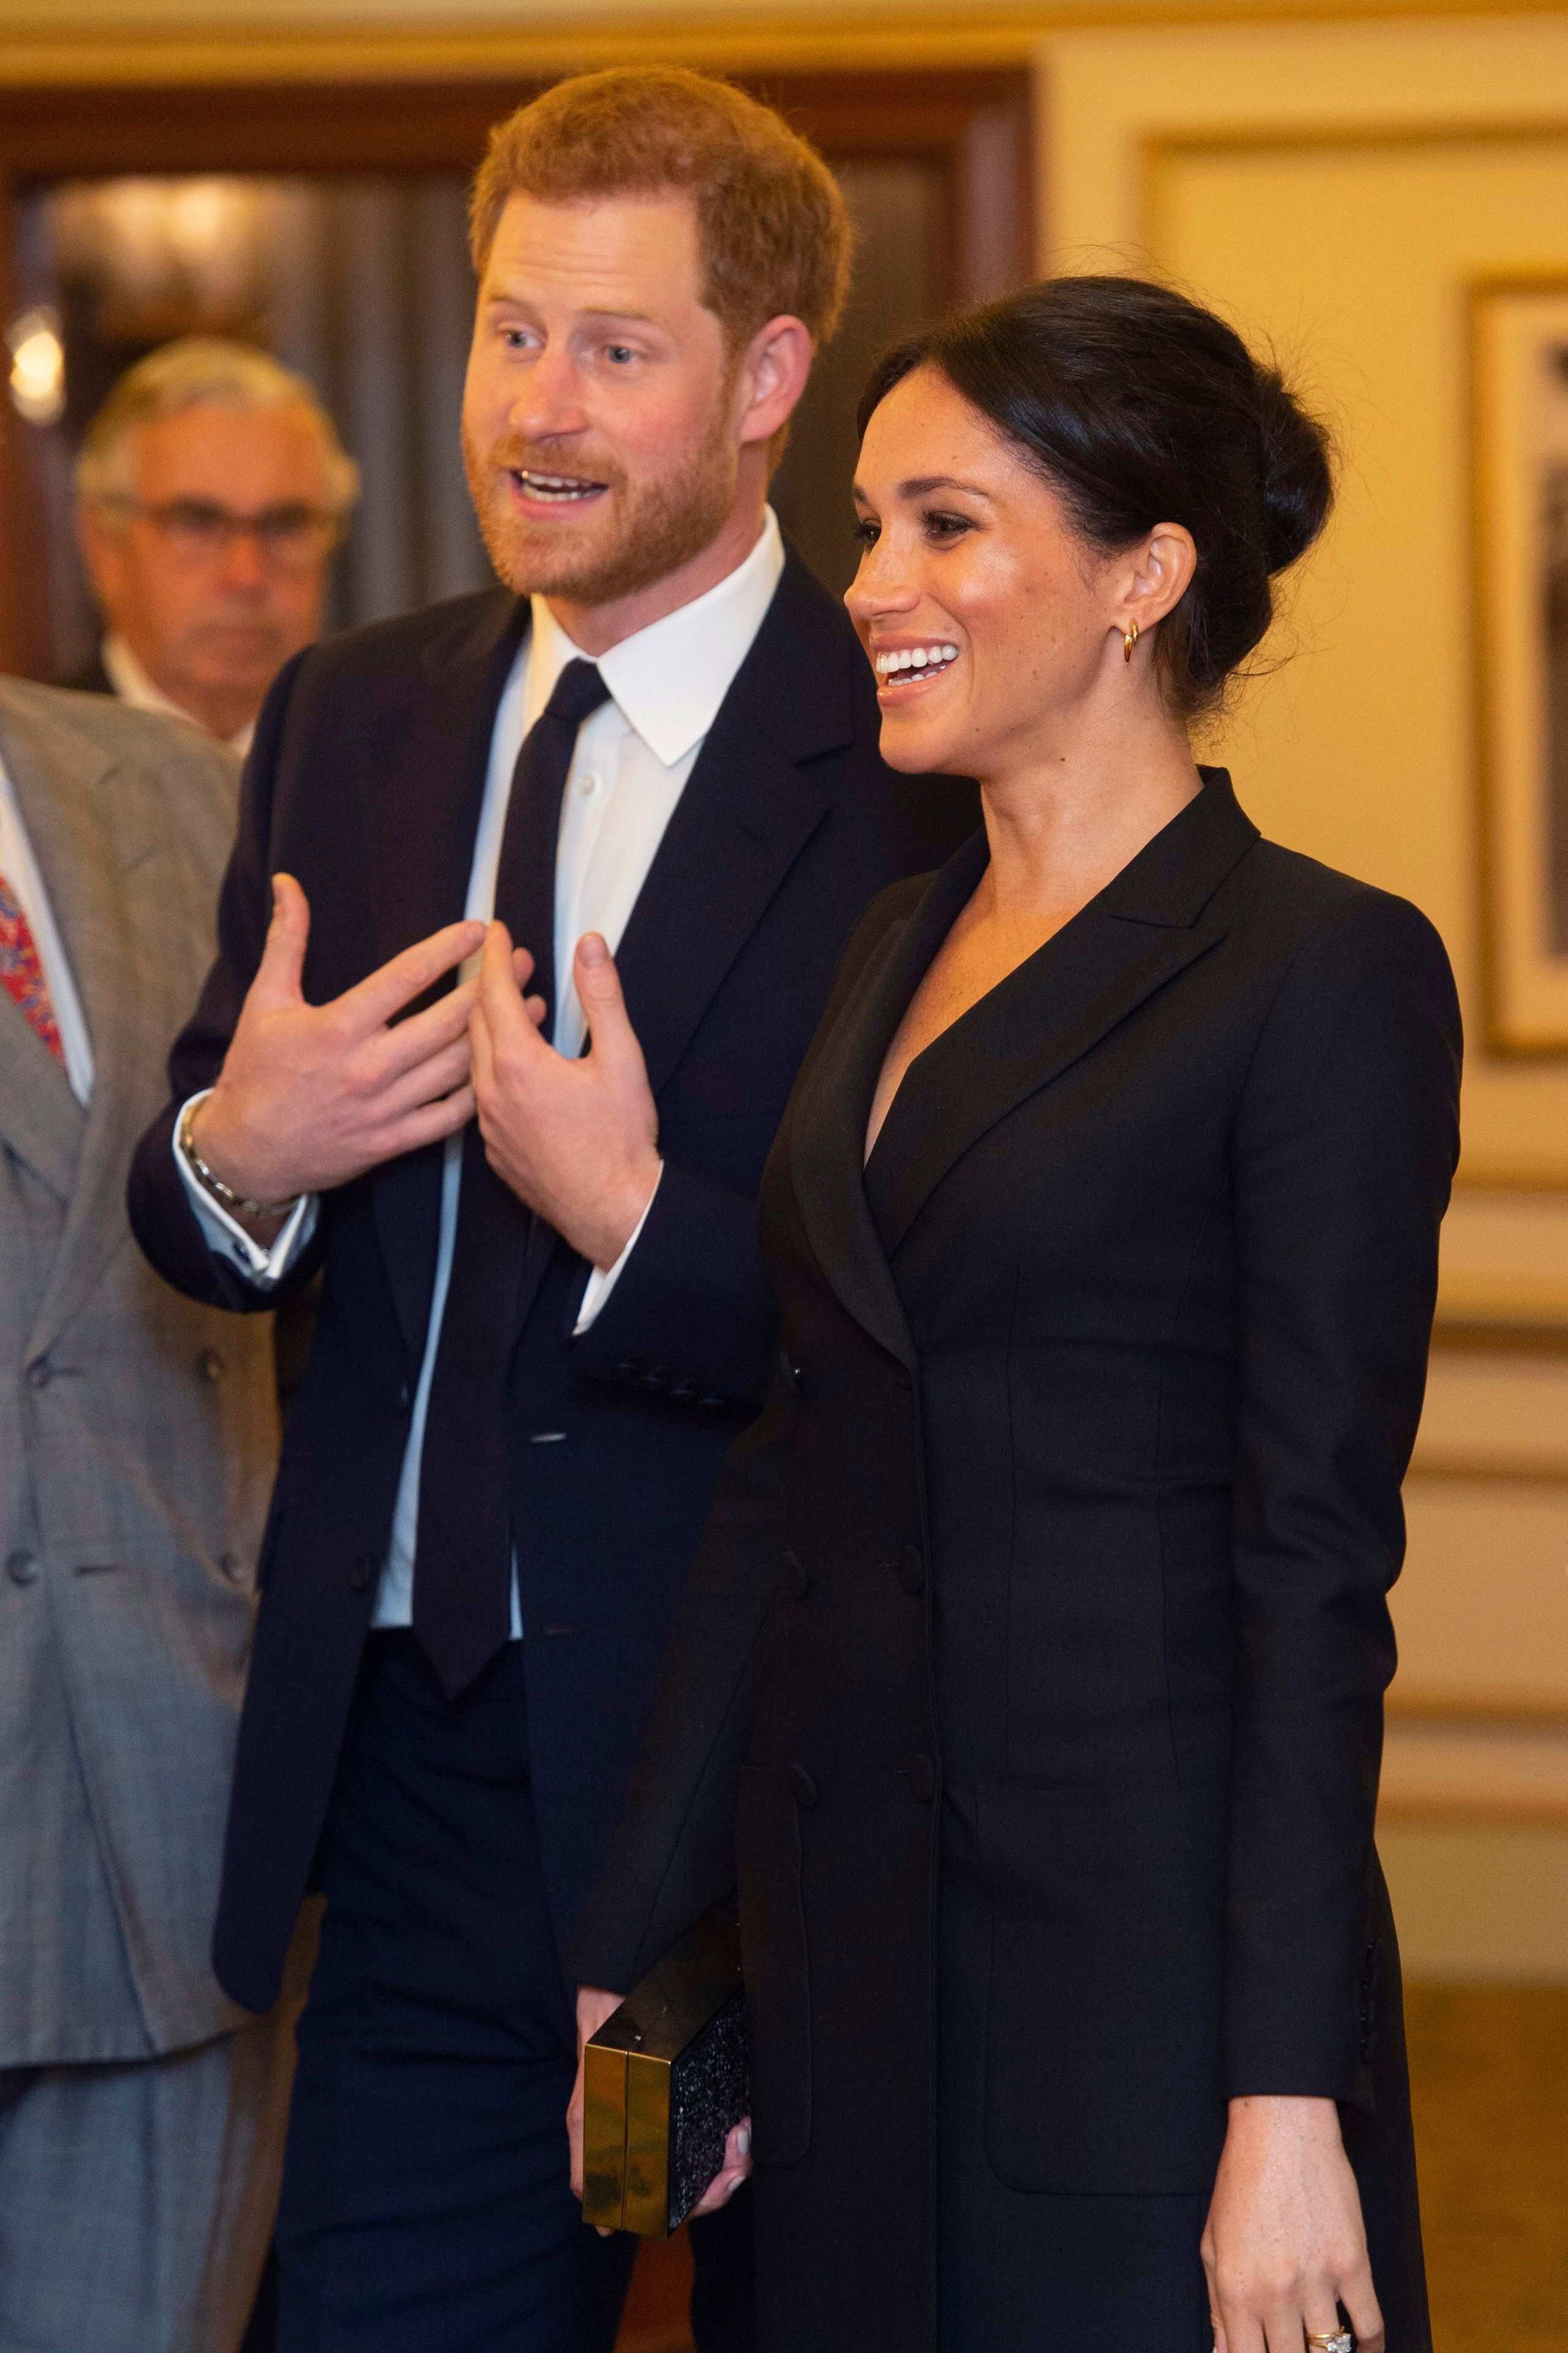 Prince Harry wows crowds with his adorable' singing voice as he attends musical with wife Meghan